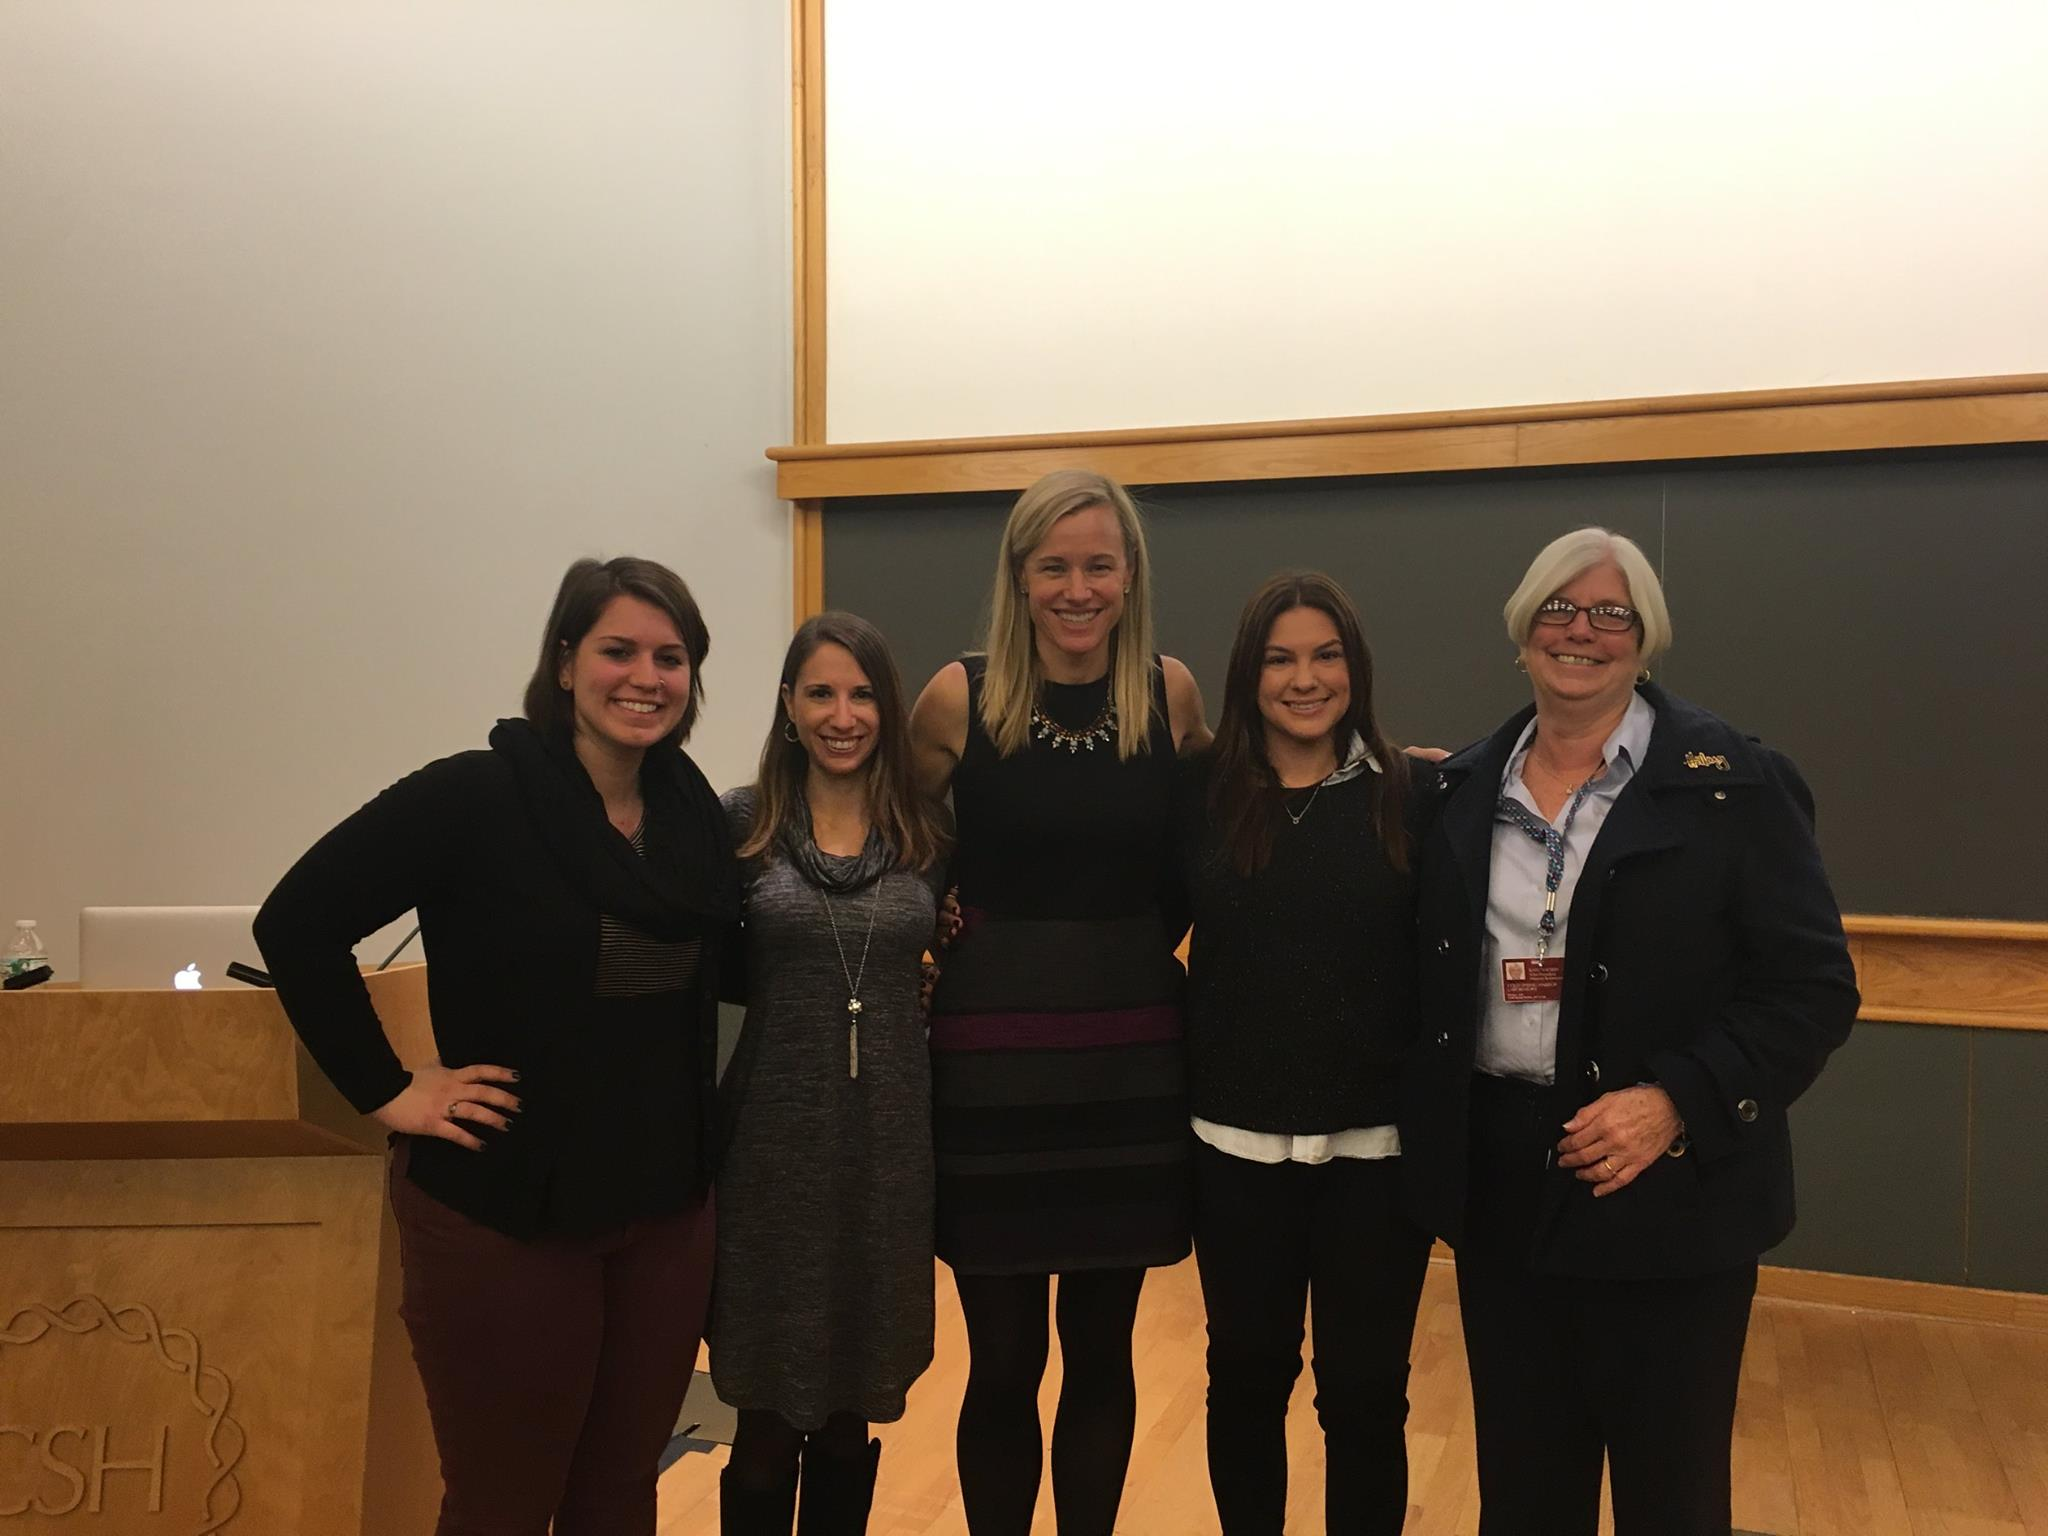 From left to right: Jackie, Lital, Liz, Alex and Katie Raftery (VP Human Resources)